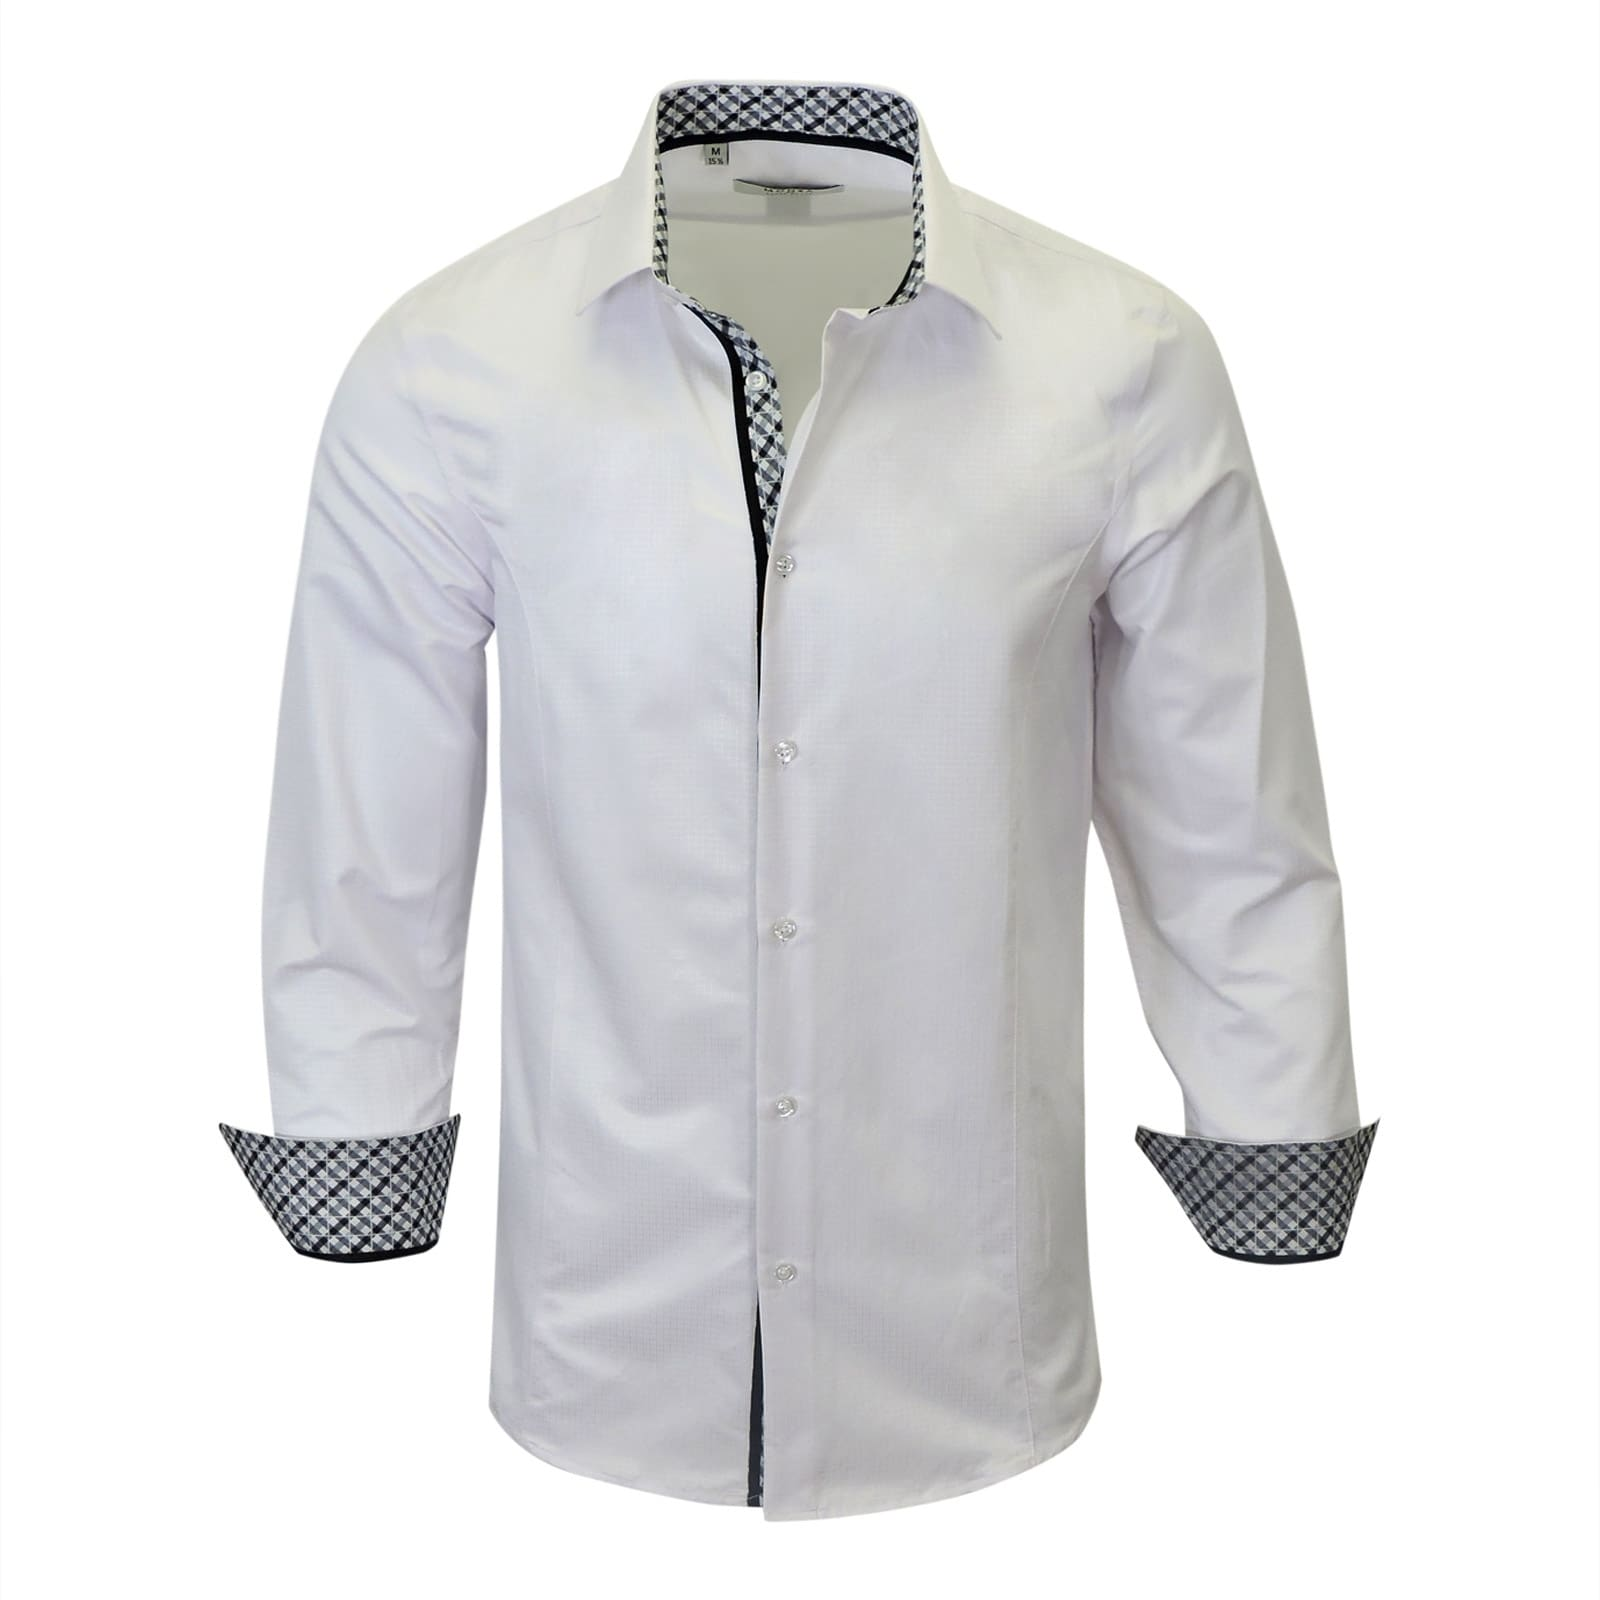 Shop Contreasted Modern Fit Mens Dress Shirt From Monza Free